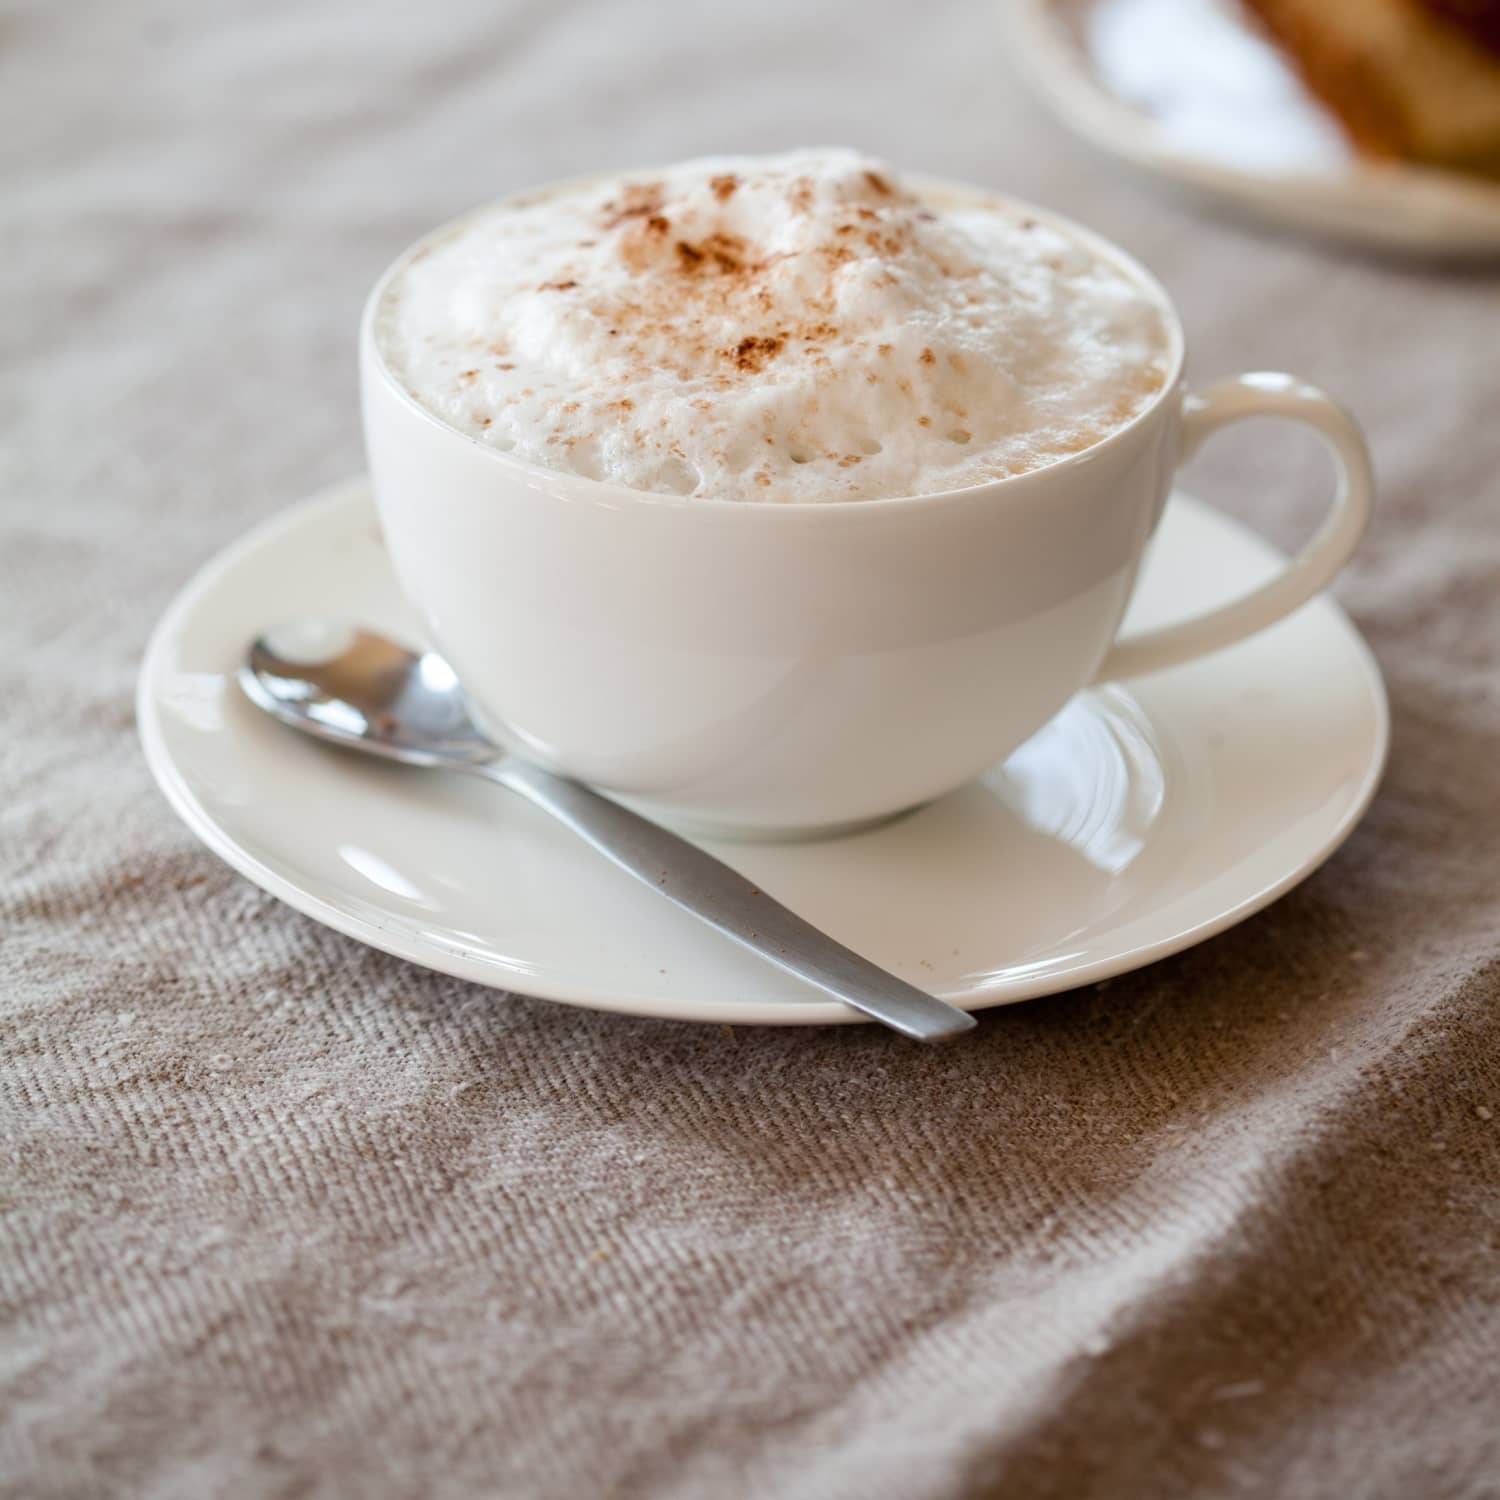 How To Make A Latte At Home Without An Espresso Machine Kitchn,Can Vegetarians Eat Fish Reddit